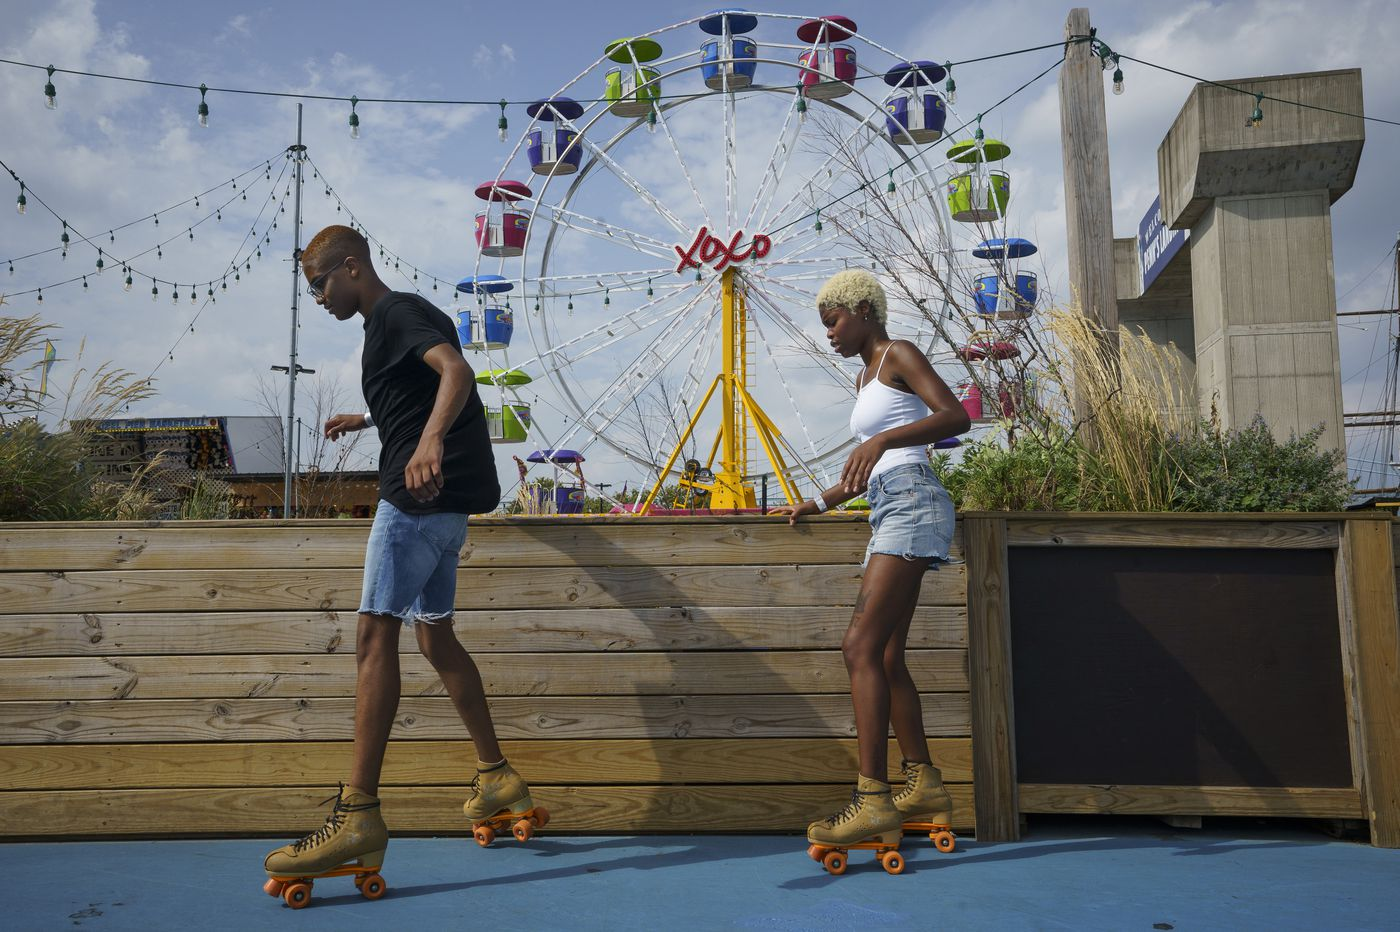 Last gasp of summer: Here's what not to miss in Philadelphia this Labor Day weekend